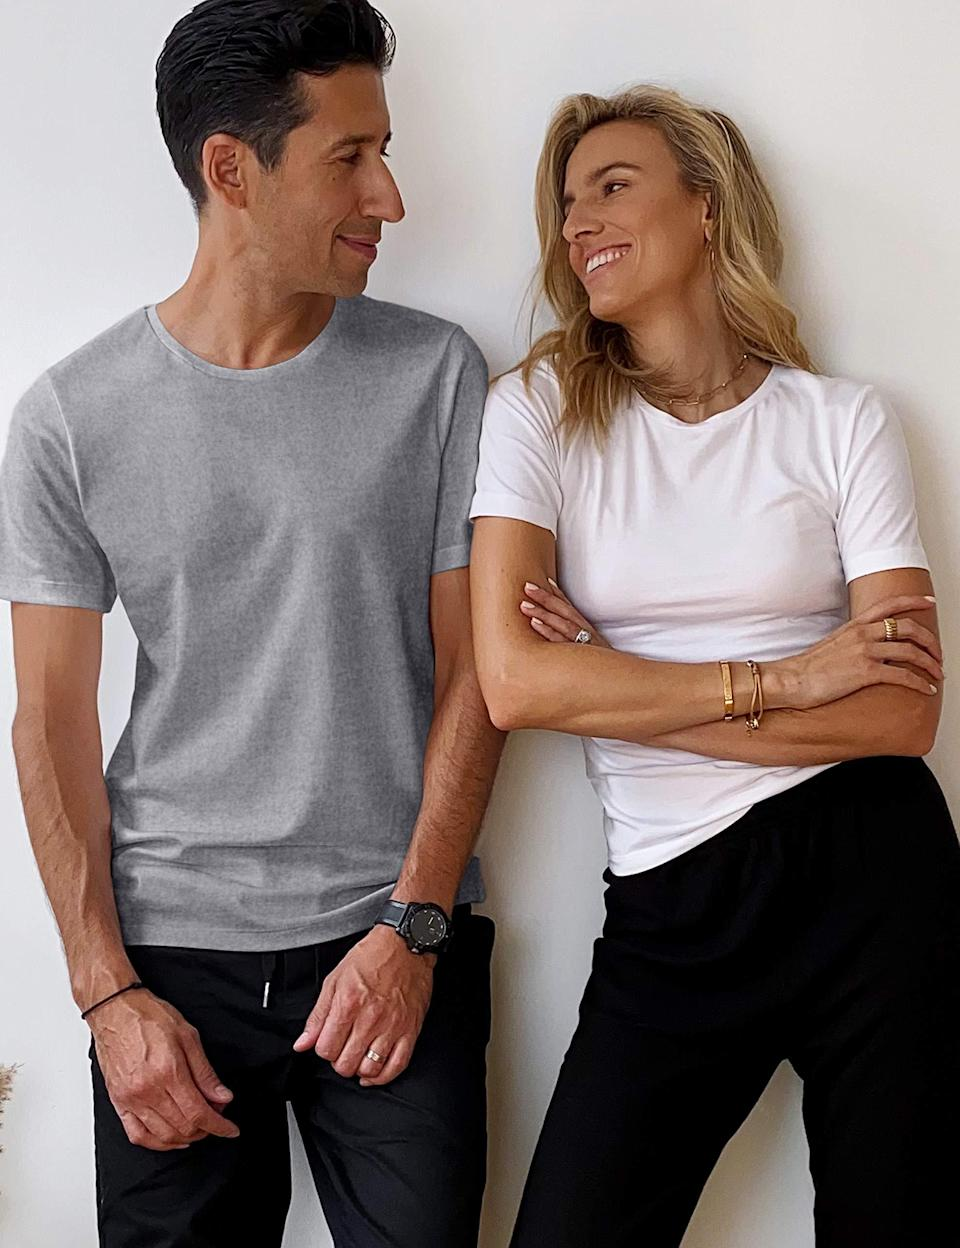 """<strong><h2>Amazon MadeForYou T-Shirt</h2></strong><br><strong>Why It's A Best Buy:</strong> Given the current circumstances, we're trading in our office-ready button-down and going-out tops for basics of the utmost quality and comfort. A perfectly proportioned t-shirt is more important than ever — and we recently test-drove a surprisingly satisfying style. Yes, Amazon launched a service where customers can choose every aspect of their t-shirt, and even submit a photo of themselves for a drop-dead-accurate fit. You can read my <a href=""""https://www.refinery29.com/en-us/2021/02/10289909/amazon-custom-shirt-made-by-you"""" rel=""""nofollow noopener"""" target=""""_blank"""" data-ylk=""""slk:hot take on the custom tee here"""" class=""""link rapid-noclick-resp"""">hot take on the custom tee here</a>, but I've summarized the most salient points below.<br><br><strong>The Review:</strong> """"When the t-shirt arrived [in the mail], I was kind of flabbergasted. It wasn't that I was anticipating a terrible product — I just didn't expect it to be so perfect. (Yes, I know that's the whole point. Still!) The solid Pima cotton I had chosen felt substantial but still really soft, and the top's kelly green hue almost perfectly matched the swatch I'd seen on my computer. Fit-wise, there were no surprises — the boxy torso silhouette was in line with what I'd selected as my fit preference. The shoulders and sleeves fit my arms and shoulders with a Goldilocks-ian accuracy, which I did not object to."""" – <em>Emily Ruane, Refinery29 Fashion Market Writer</em><br><br><strong>MadeForYou</strong> Made-to-Measure T-Shirt, $, available at <a href=""""https://amzn.to/36LlkCB"""" rel=""""nofollow noopener"""" target=""""_blank"""" data-ylk=""""slk:Amazon"""" class=""""link rapid-noclick-resp"""">Amazon</a>"""